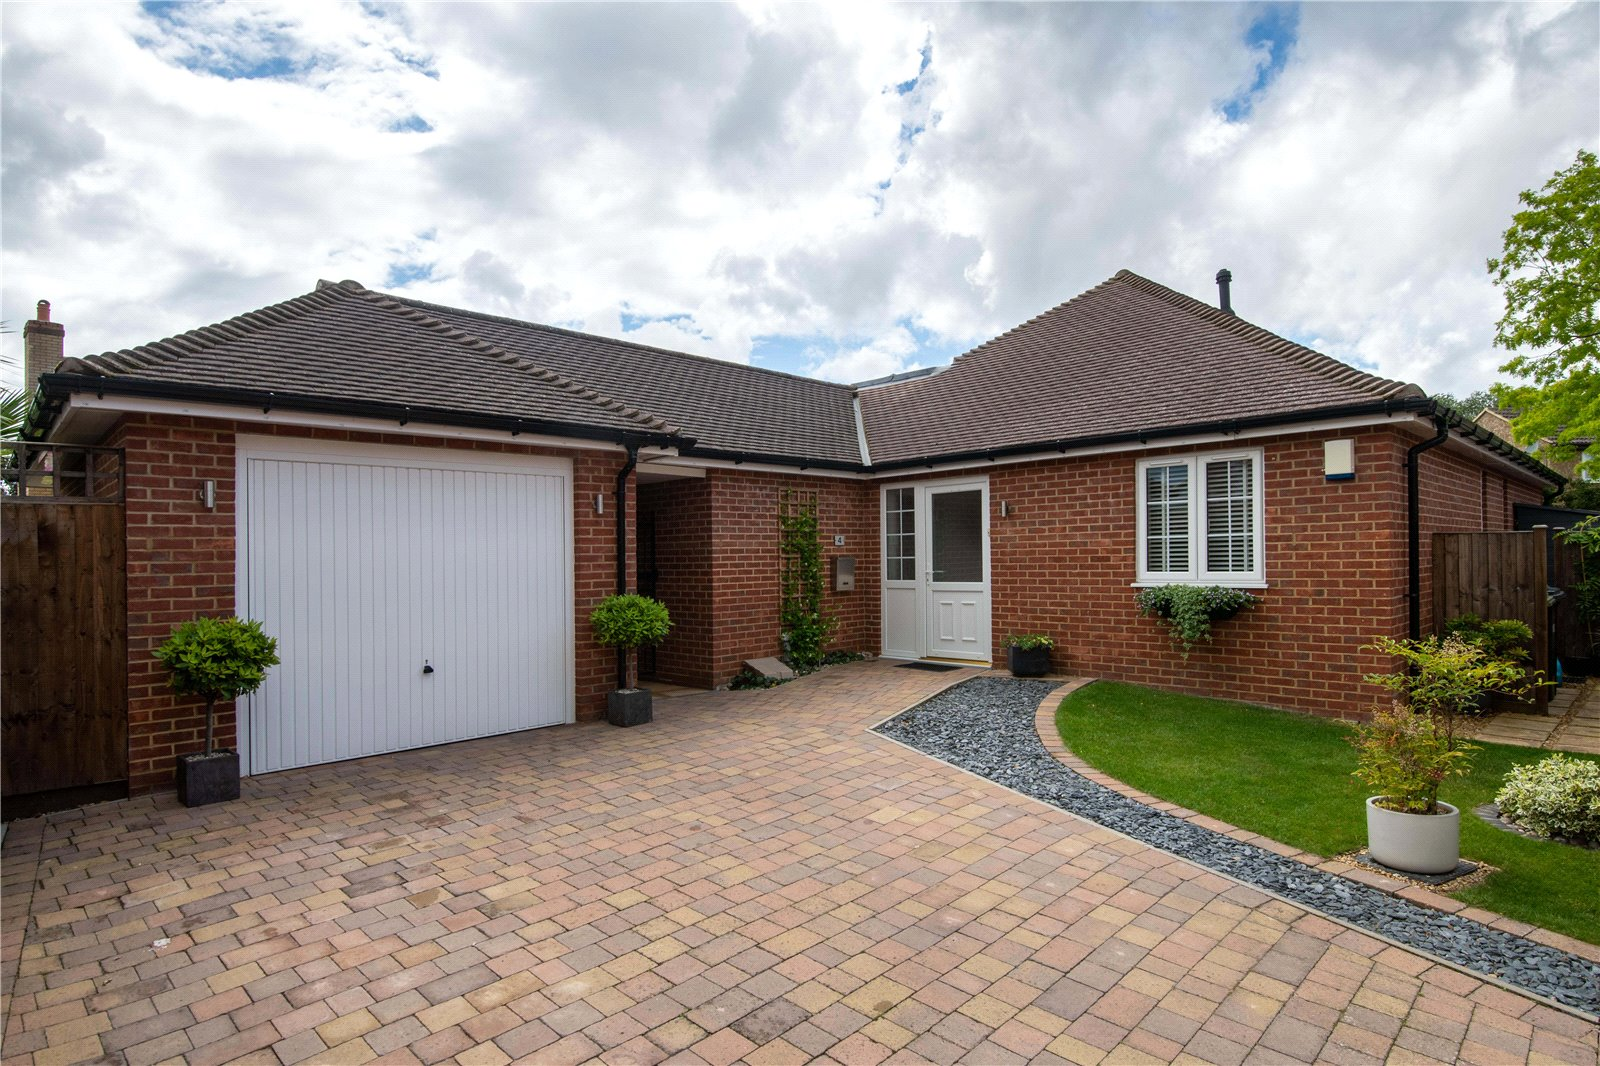 2 bed bungalow for sale in Pipistrelle Close, Little Paxton, PE19